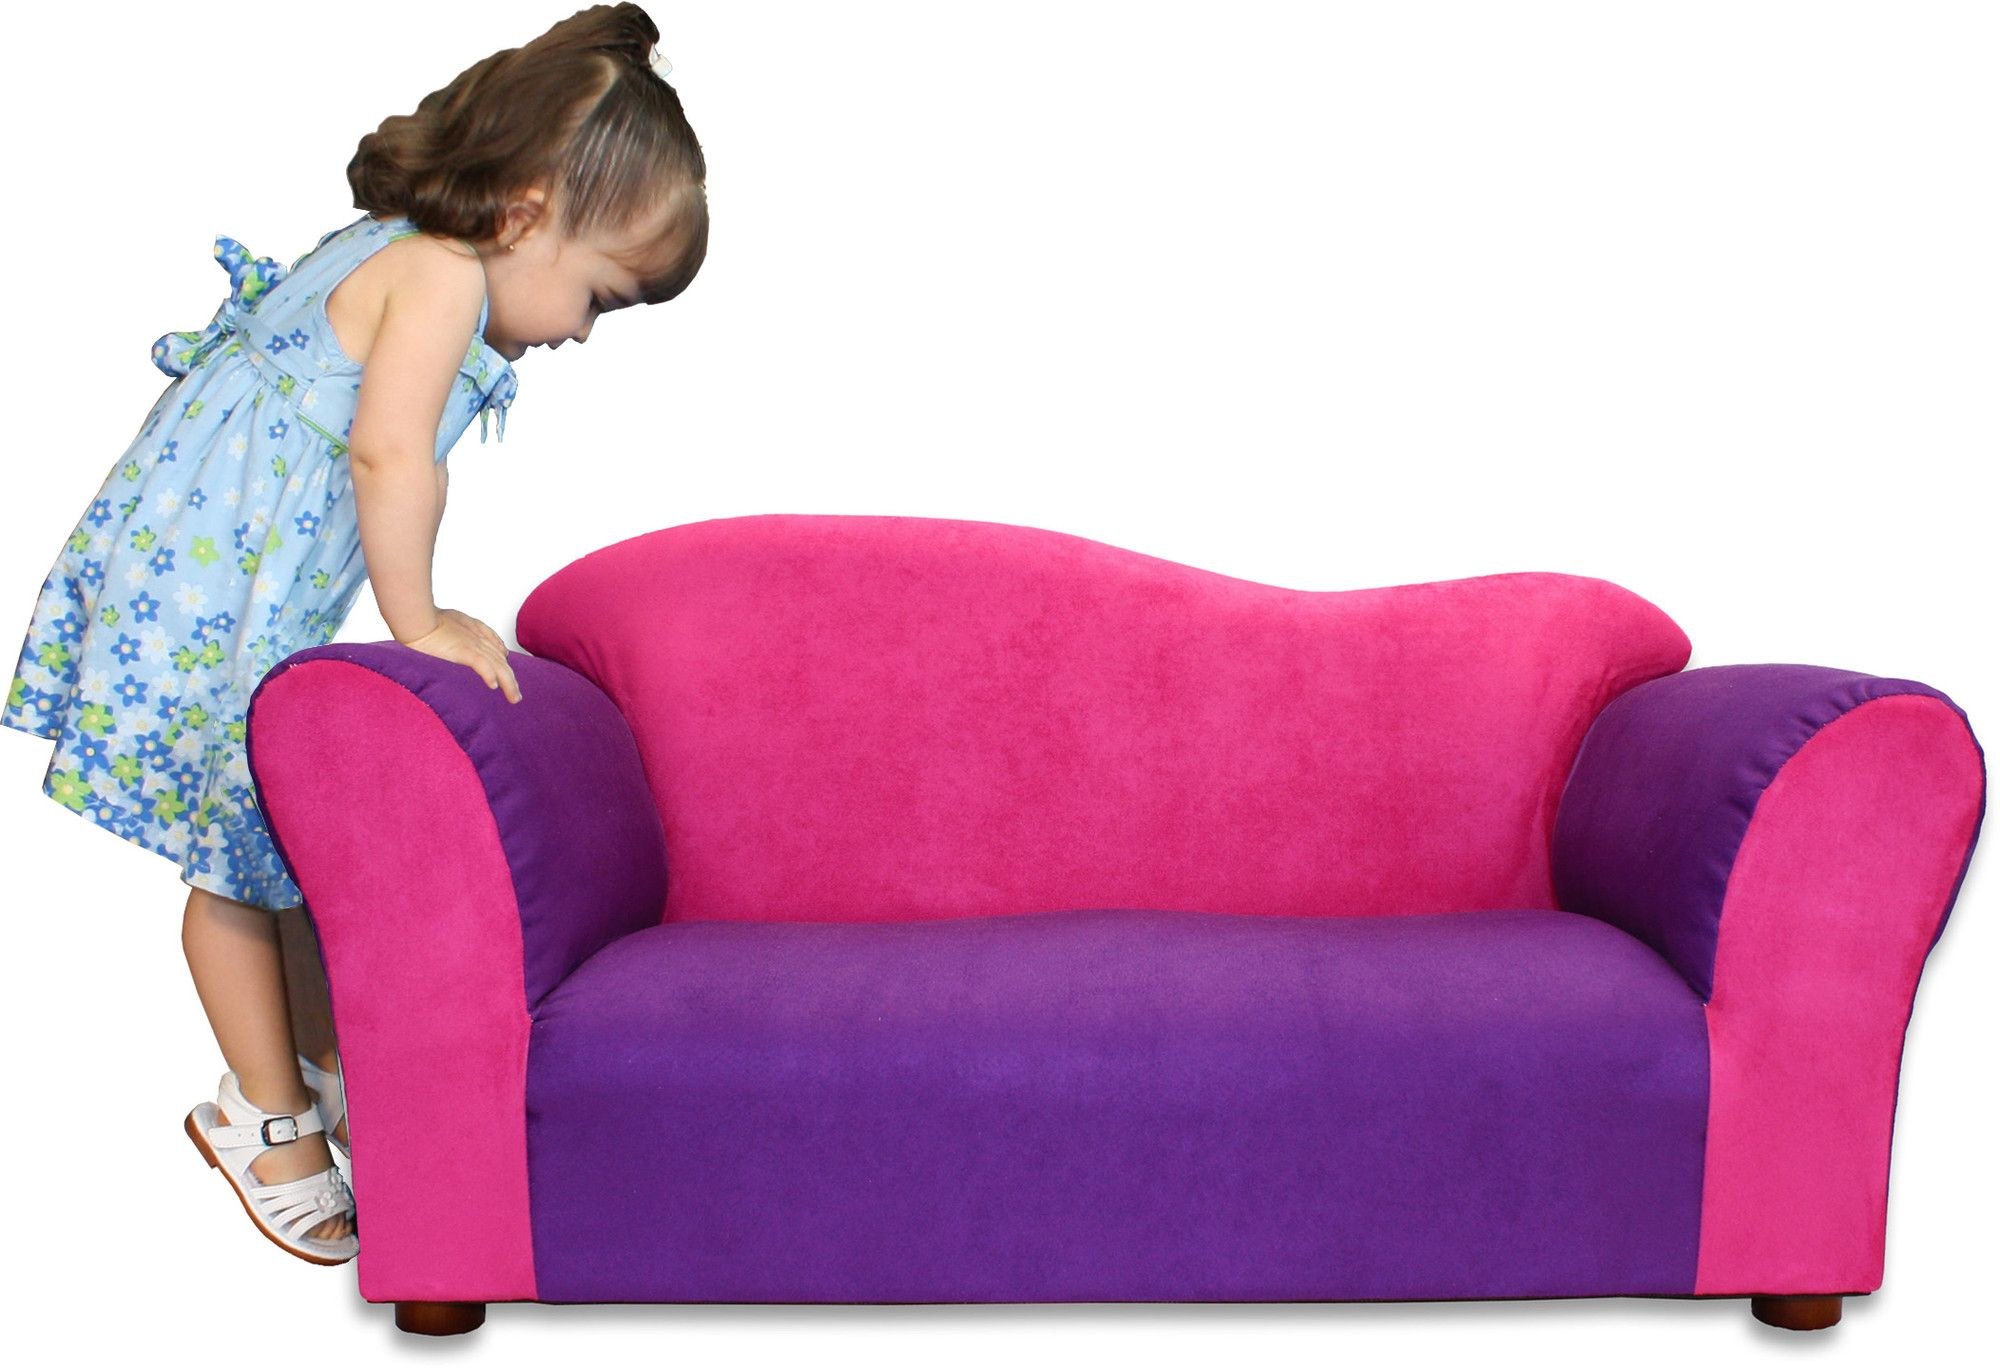 Best Toddler Sofa Designs And Ideas Goodworksfurniture In 2020 Kids Sofa Chair Childrens Bedroom Furniture Kids Sofa